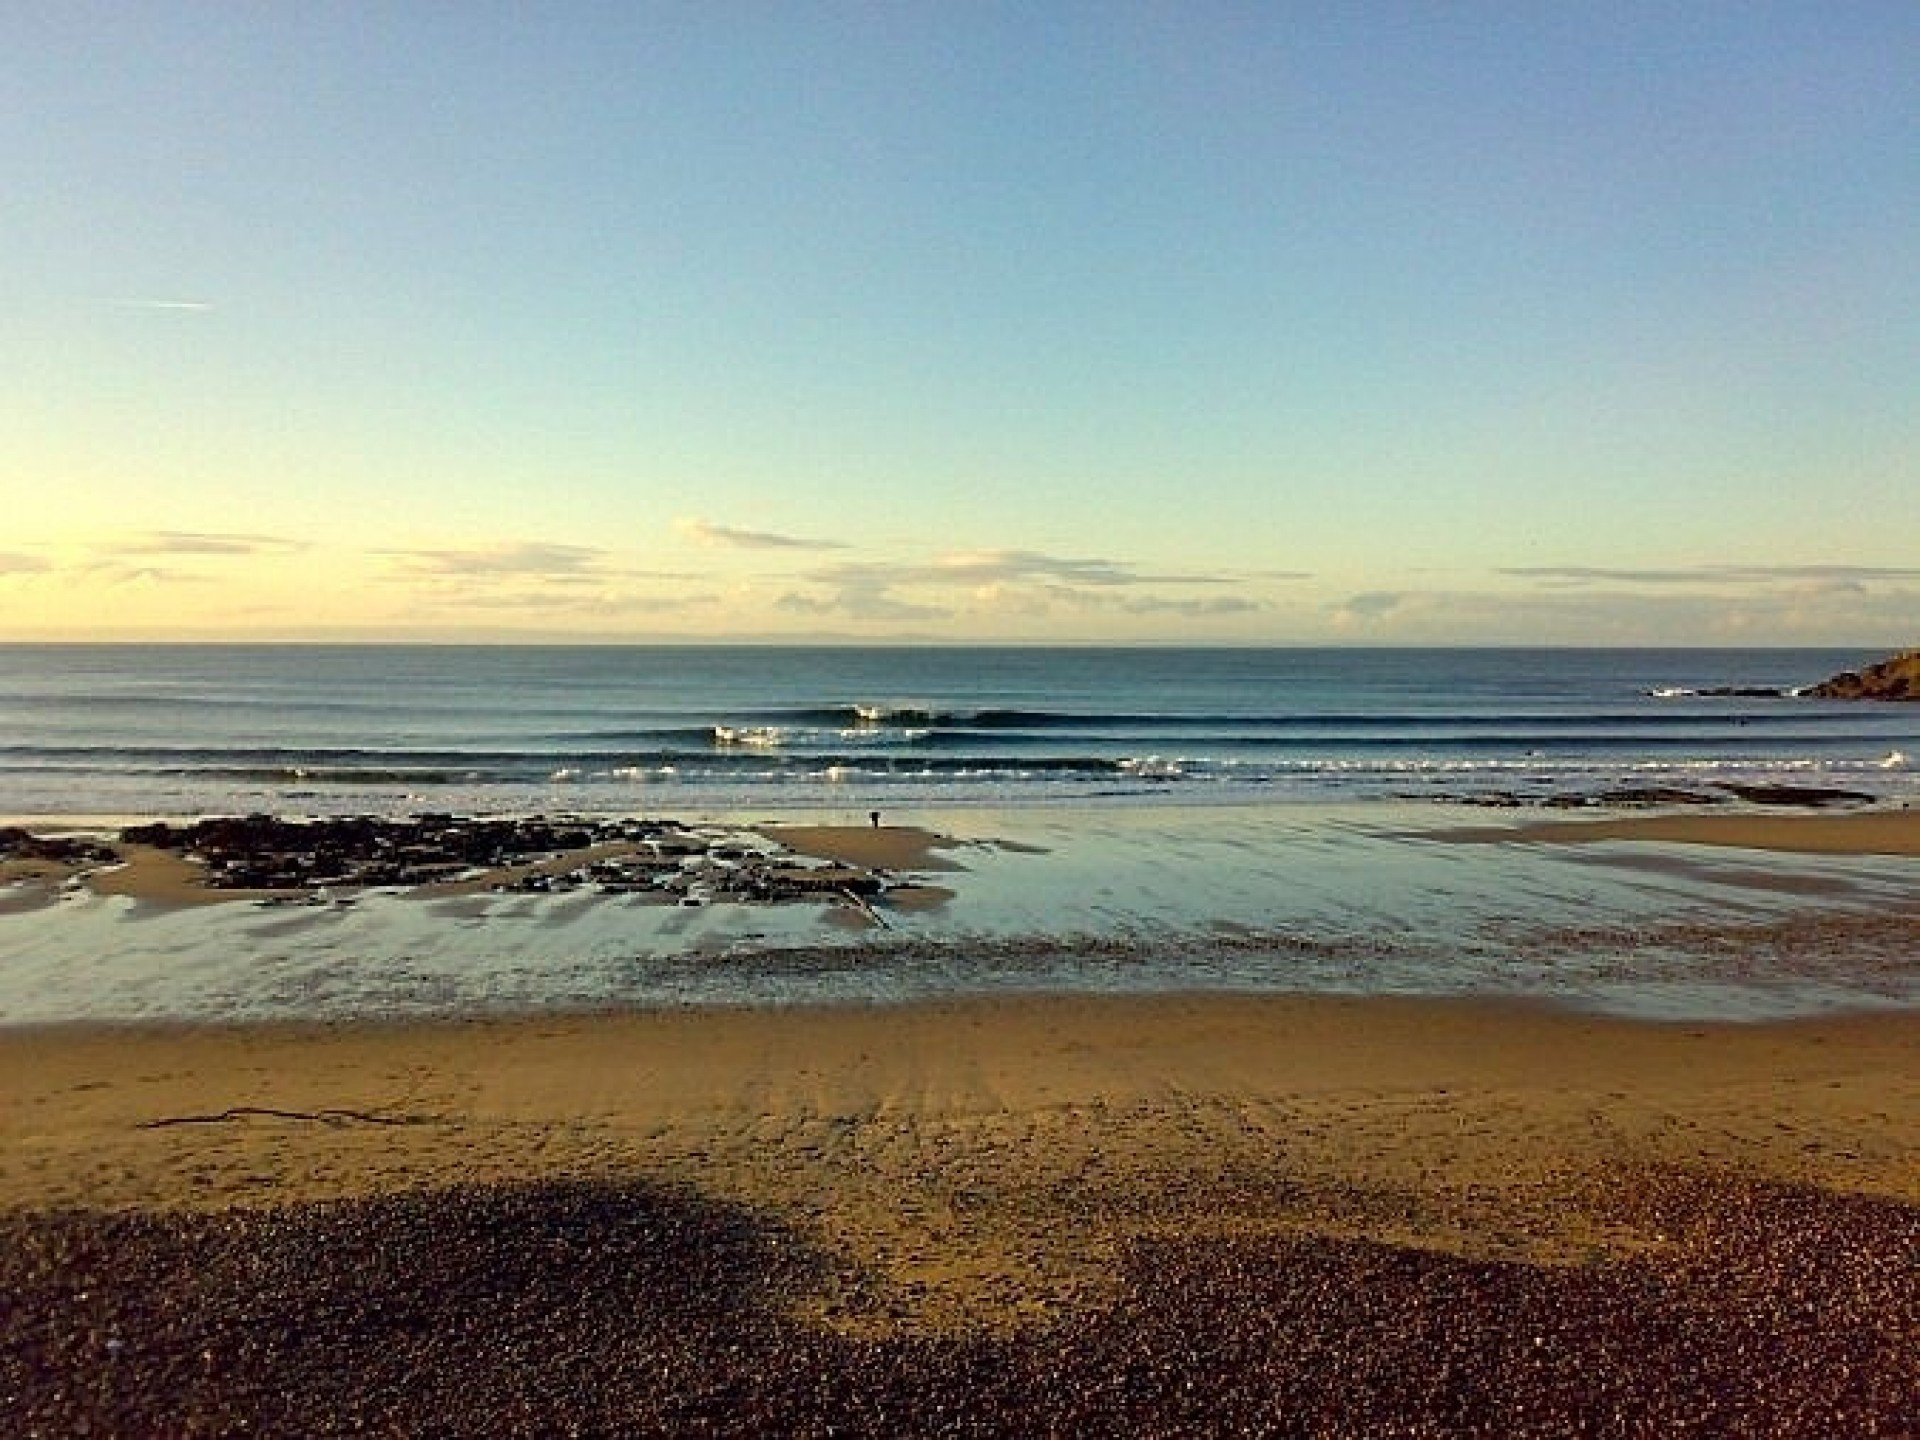 krusher74's photo of Langland Bay